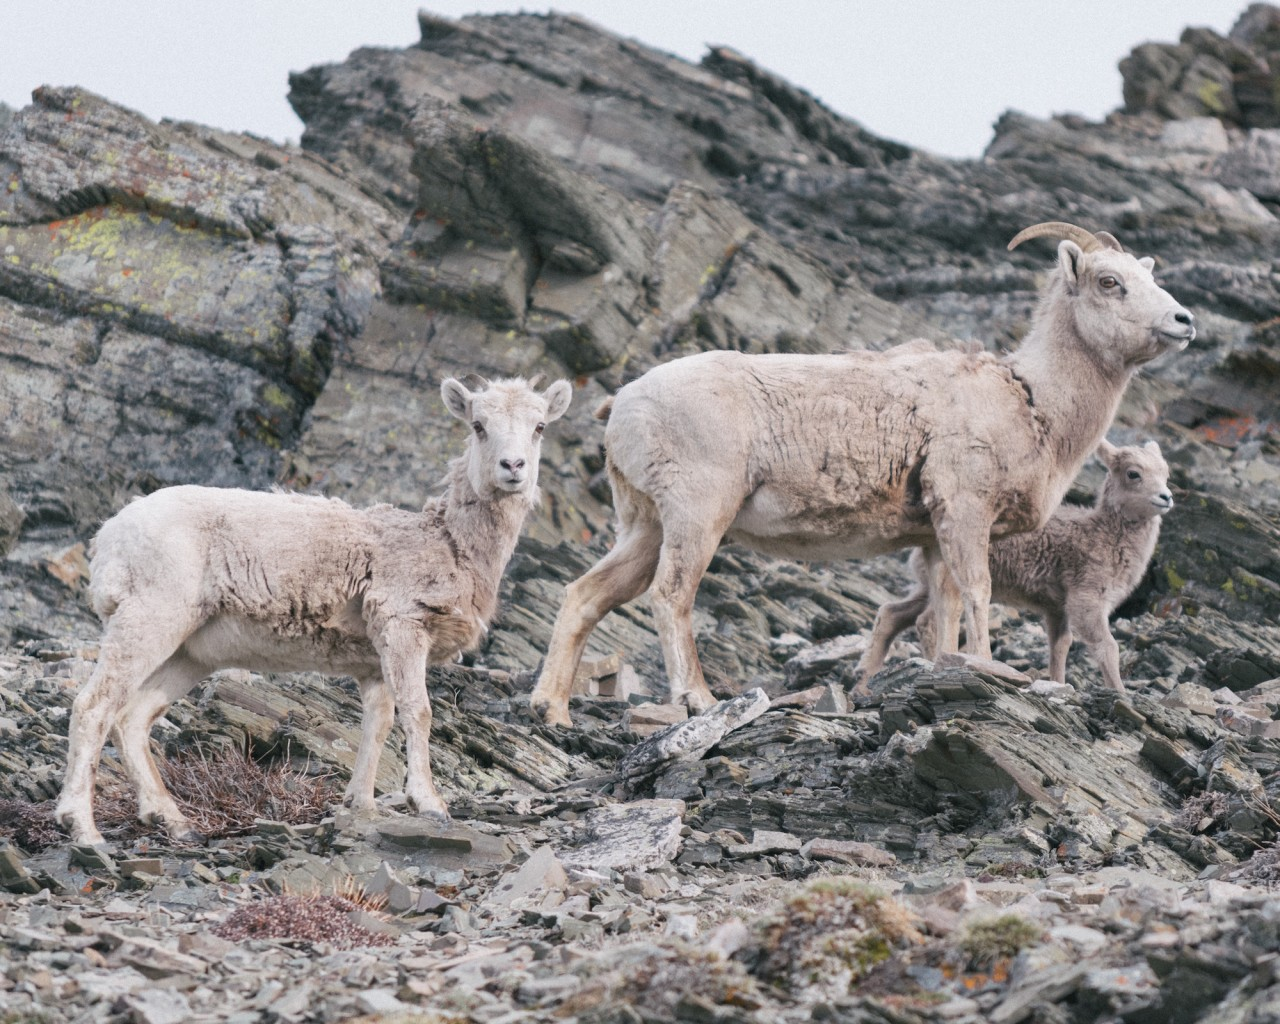 Goats in mountain